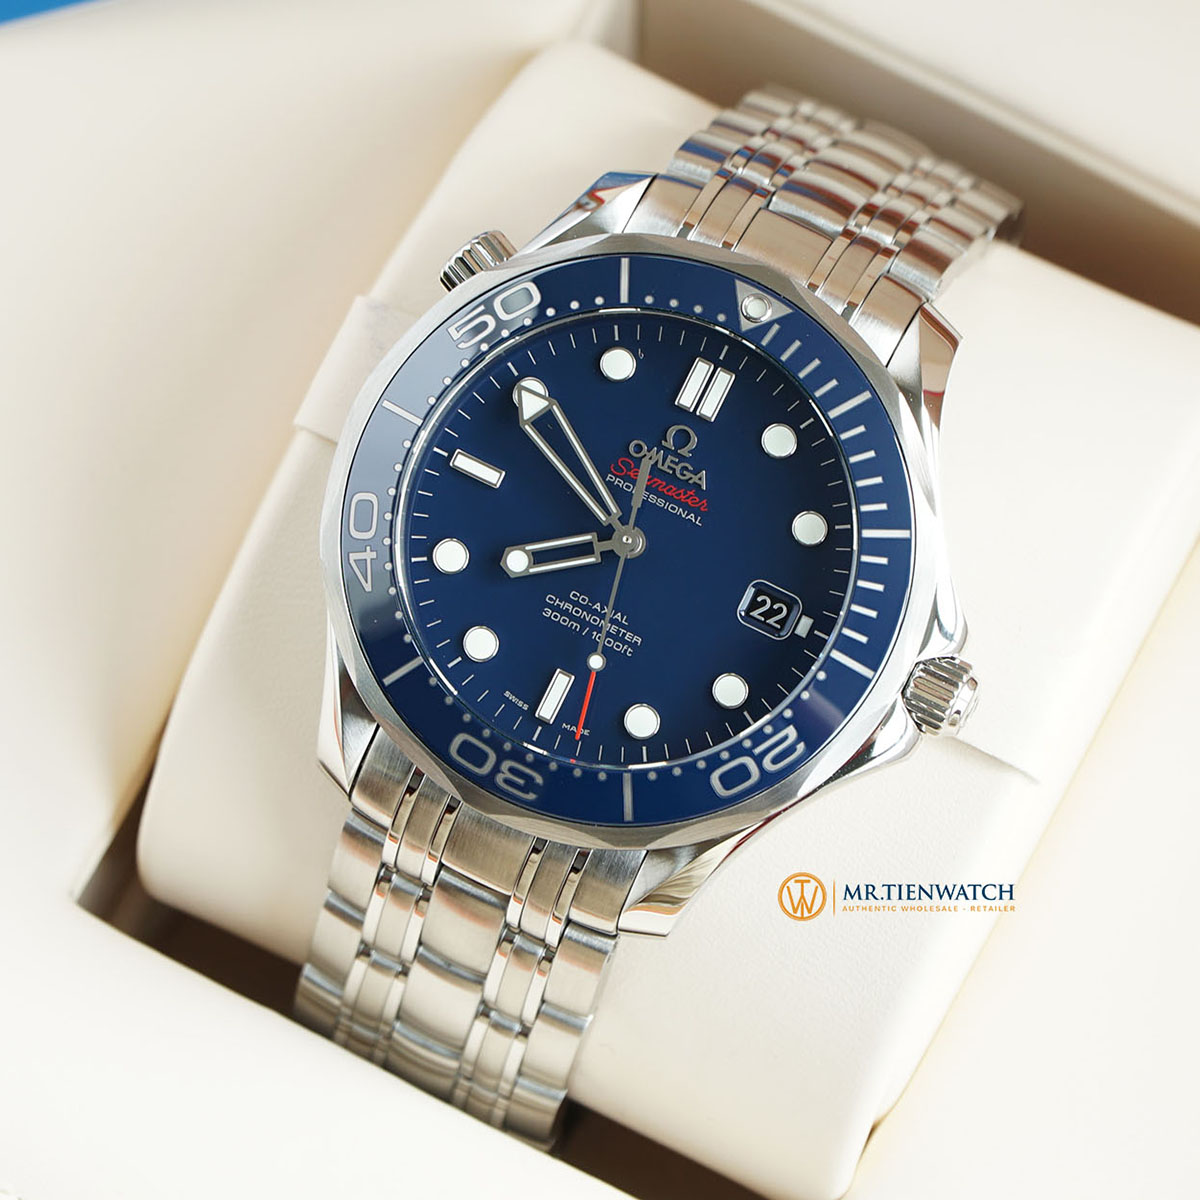 Omega Seamaster Diver 300m Chronometer Co-Axial Blue Stainless Steel 212.30.41.20.03.001